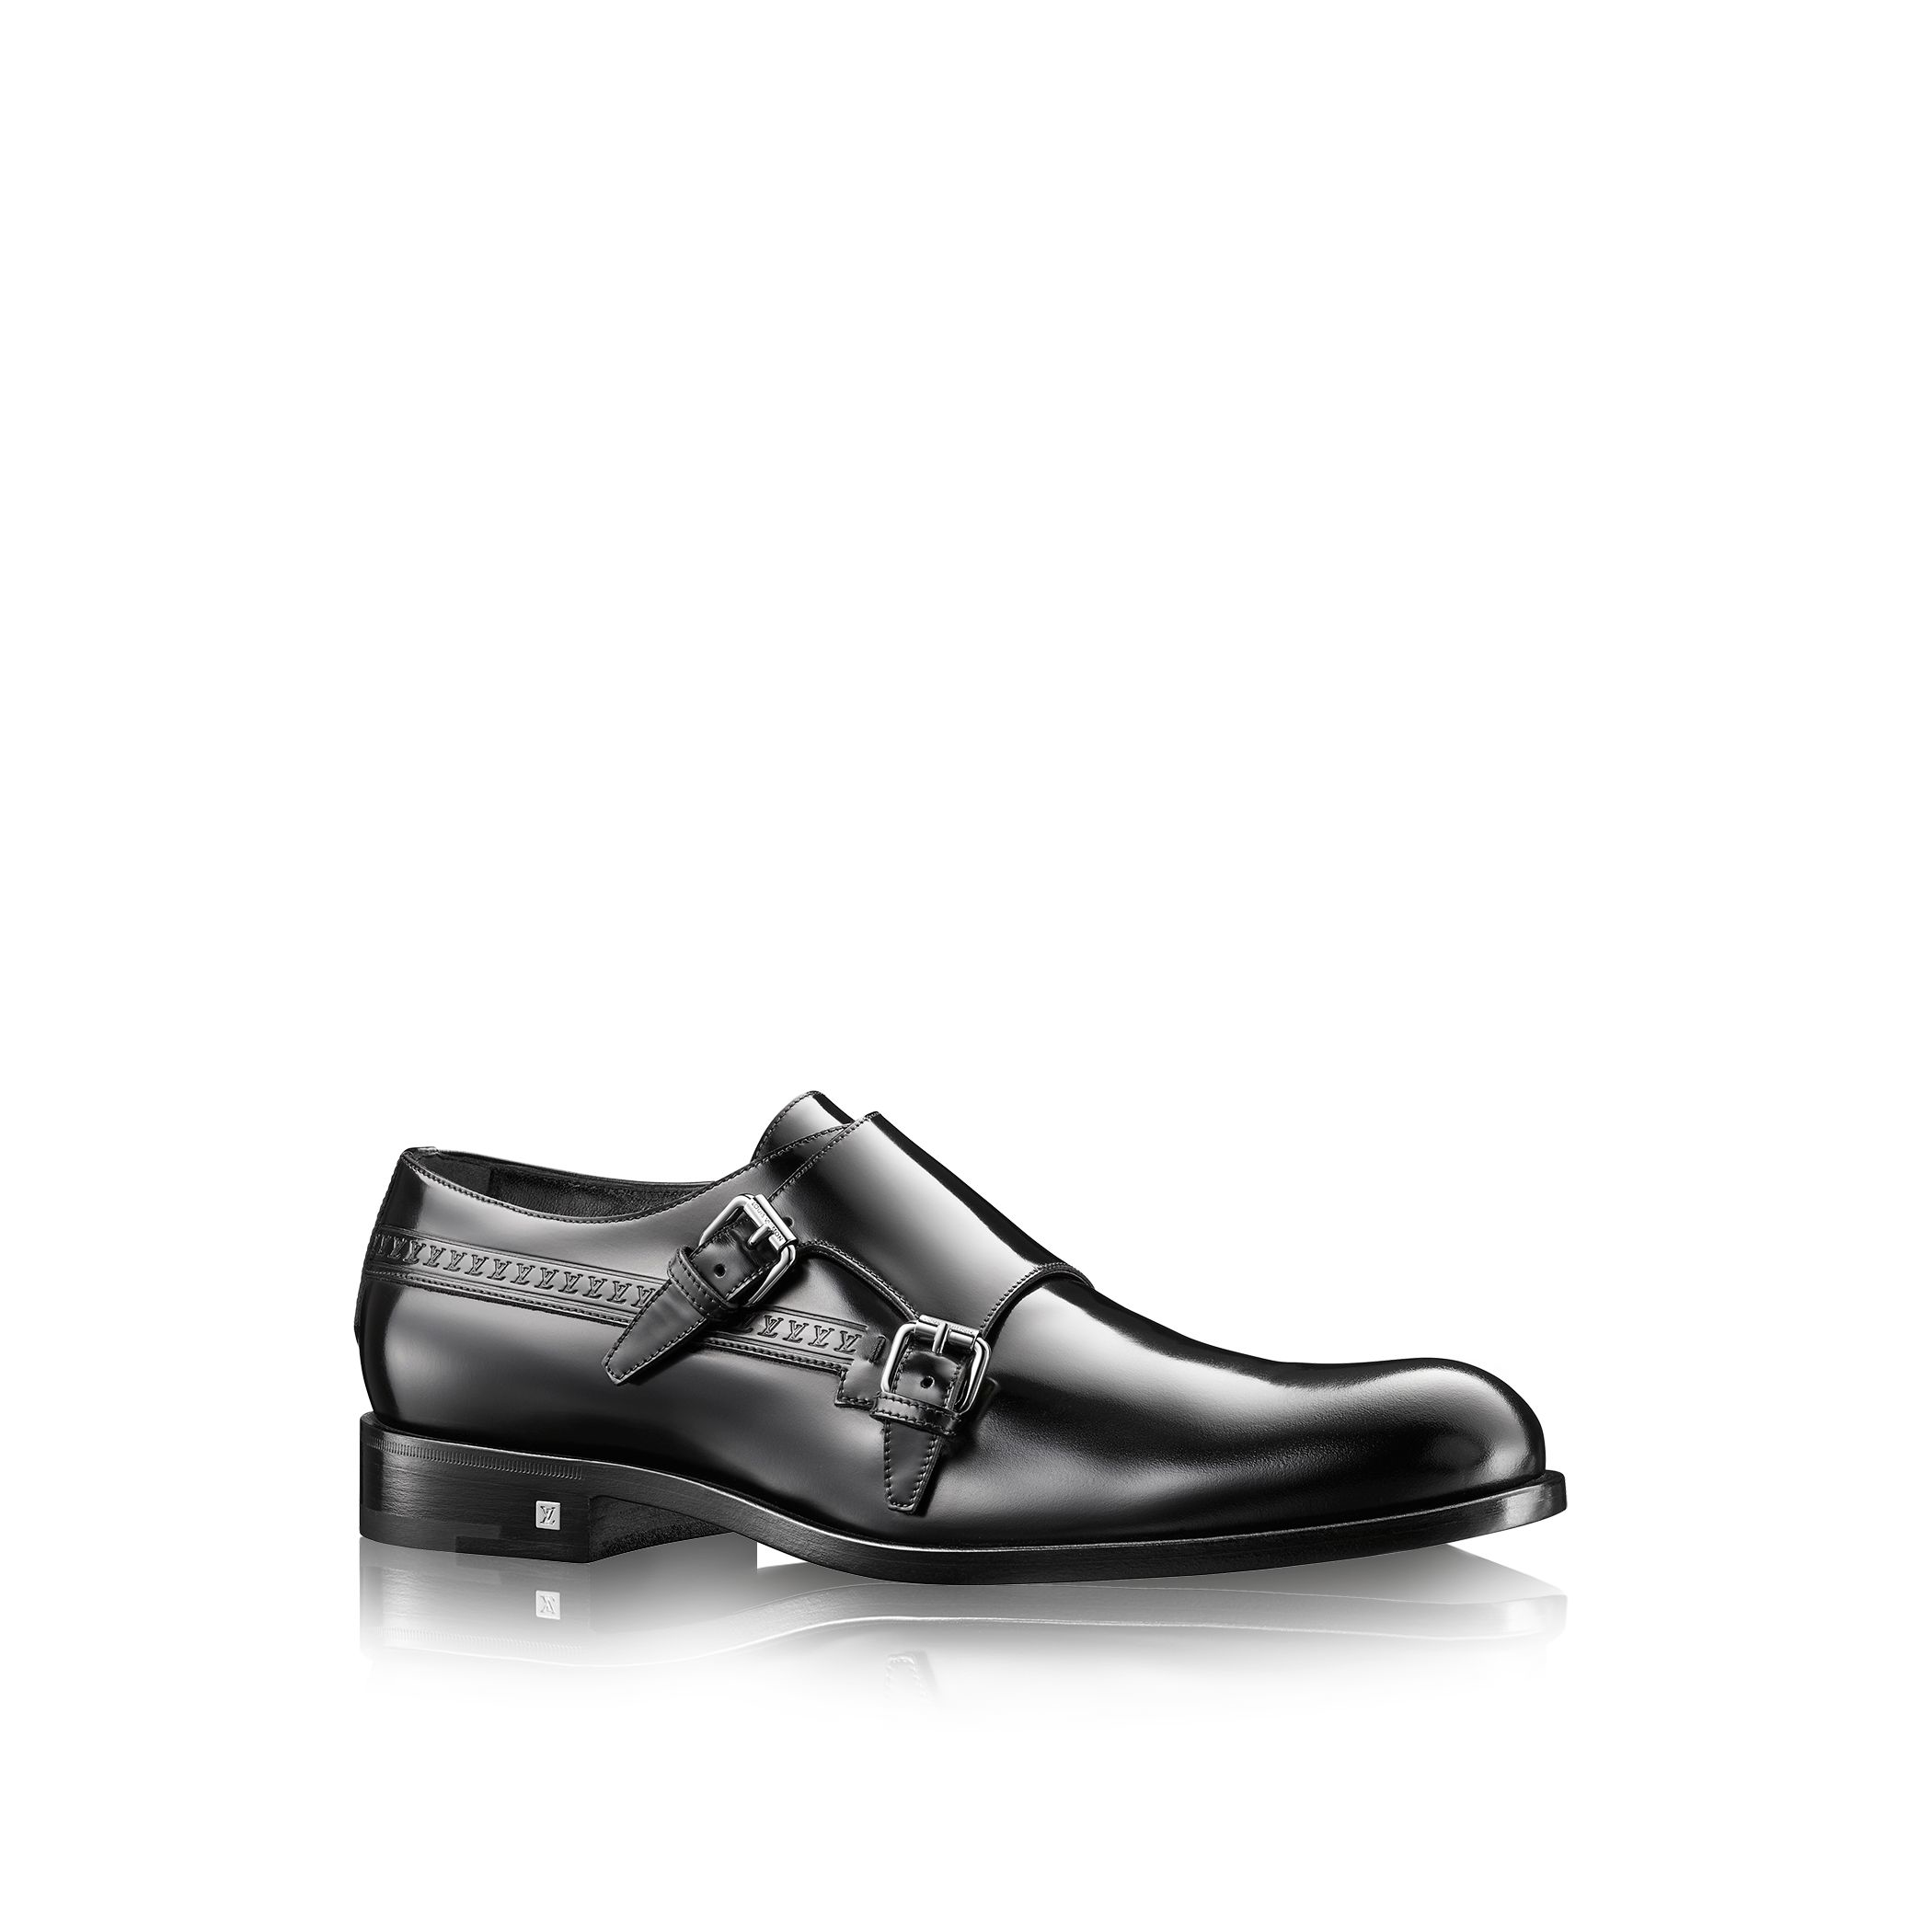 louis vuitton state buckle shoe in black for lyst